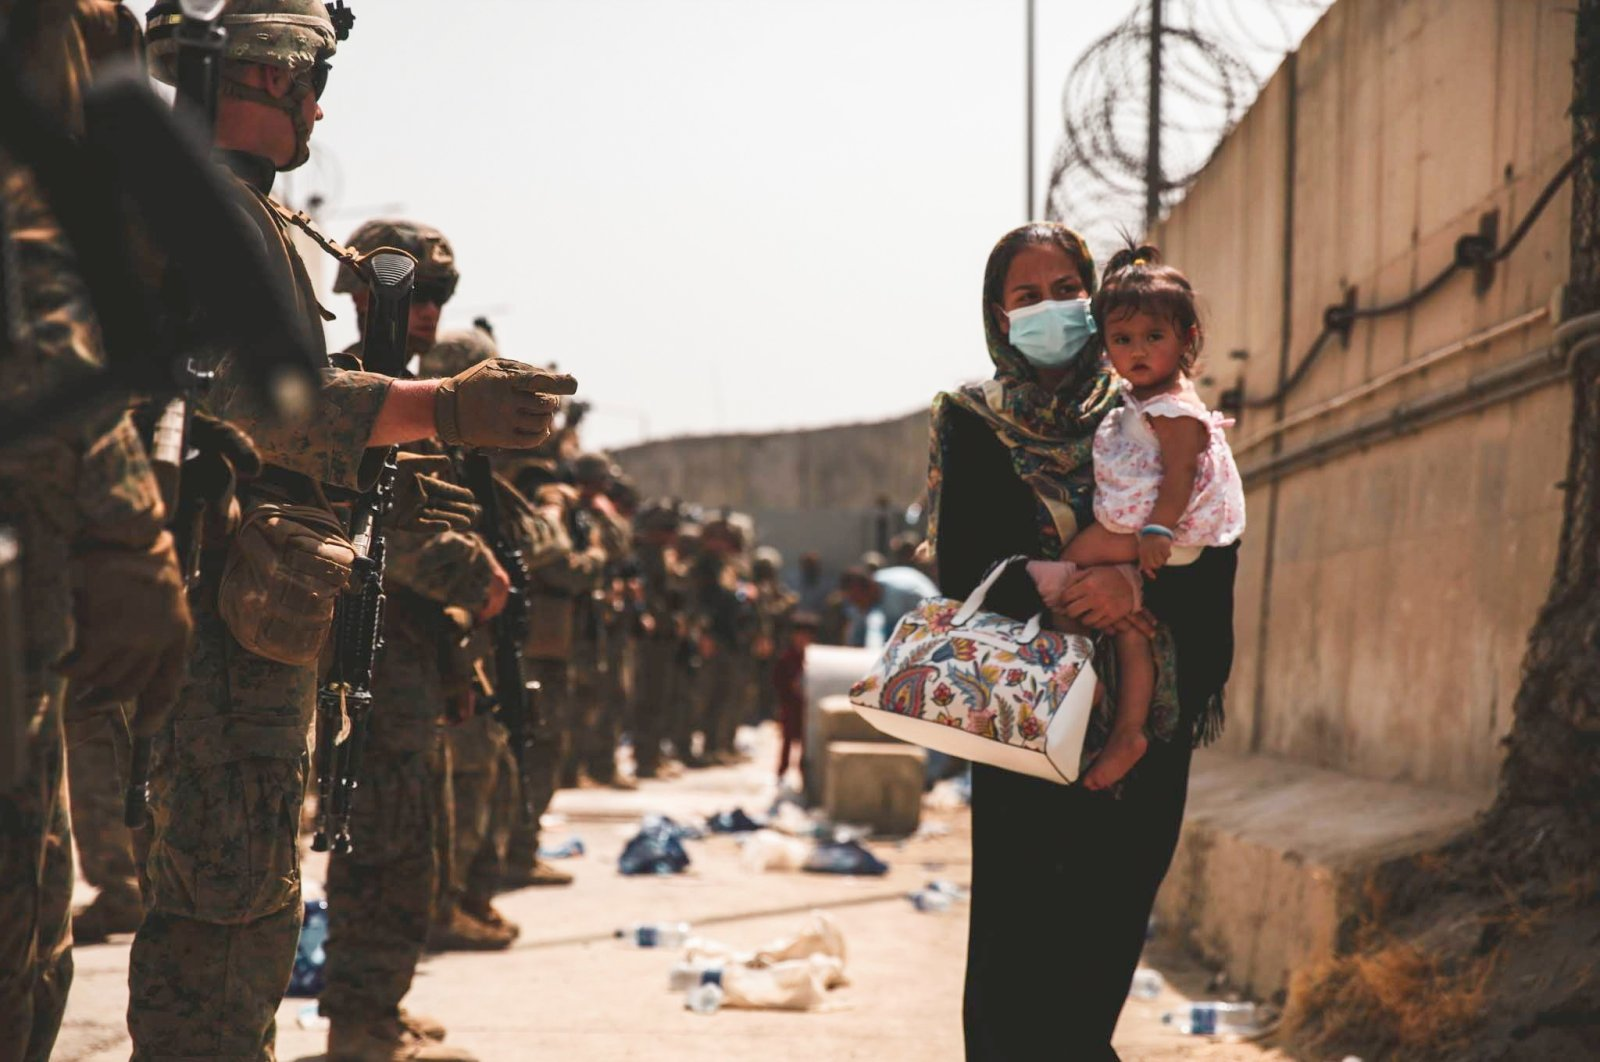 A U.S. Marine assigned to 24th Marine Expeditionary Unit guides an evacuee during an evacuation at Hamid Karzai International Airport, in Kabul, Afghanistan, Aug. 18, 2021. (Reuters Photo)